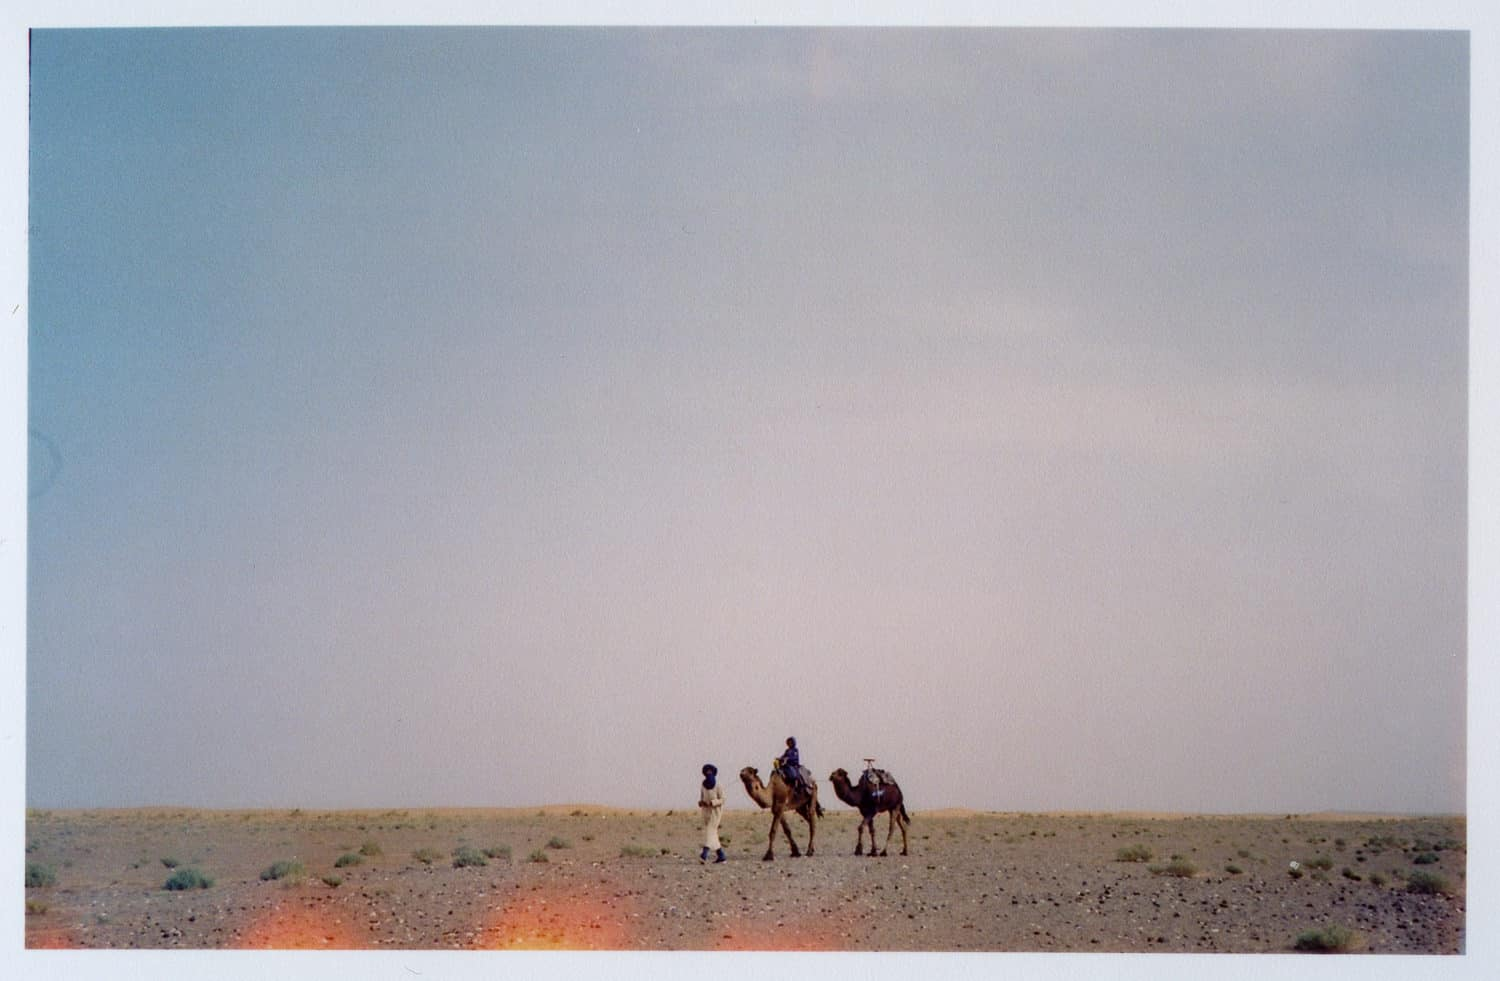 camels and bereber walking in the middle of the desert